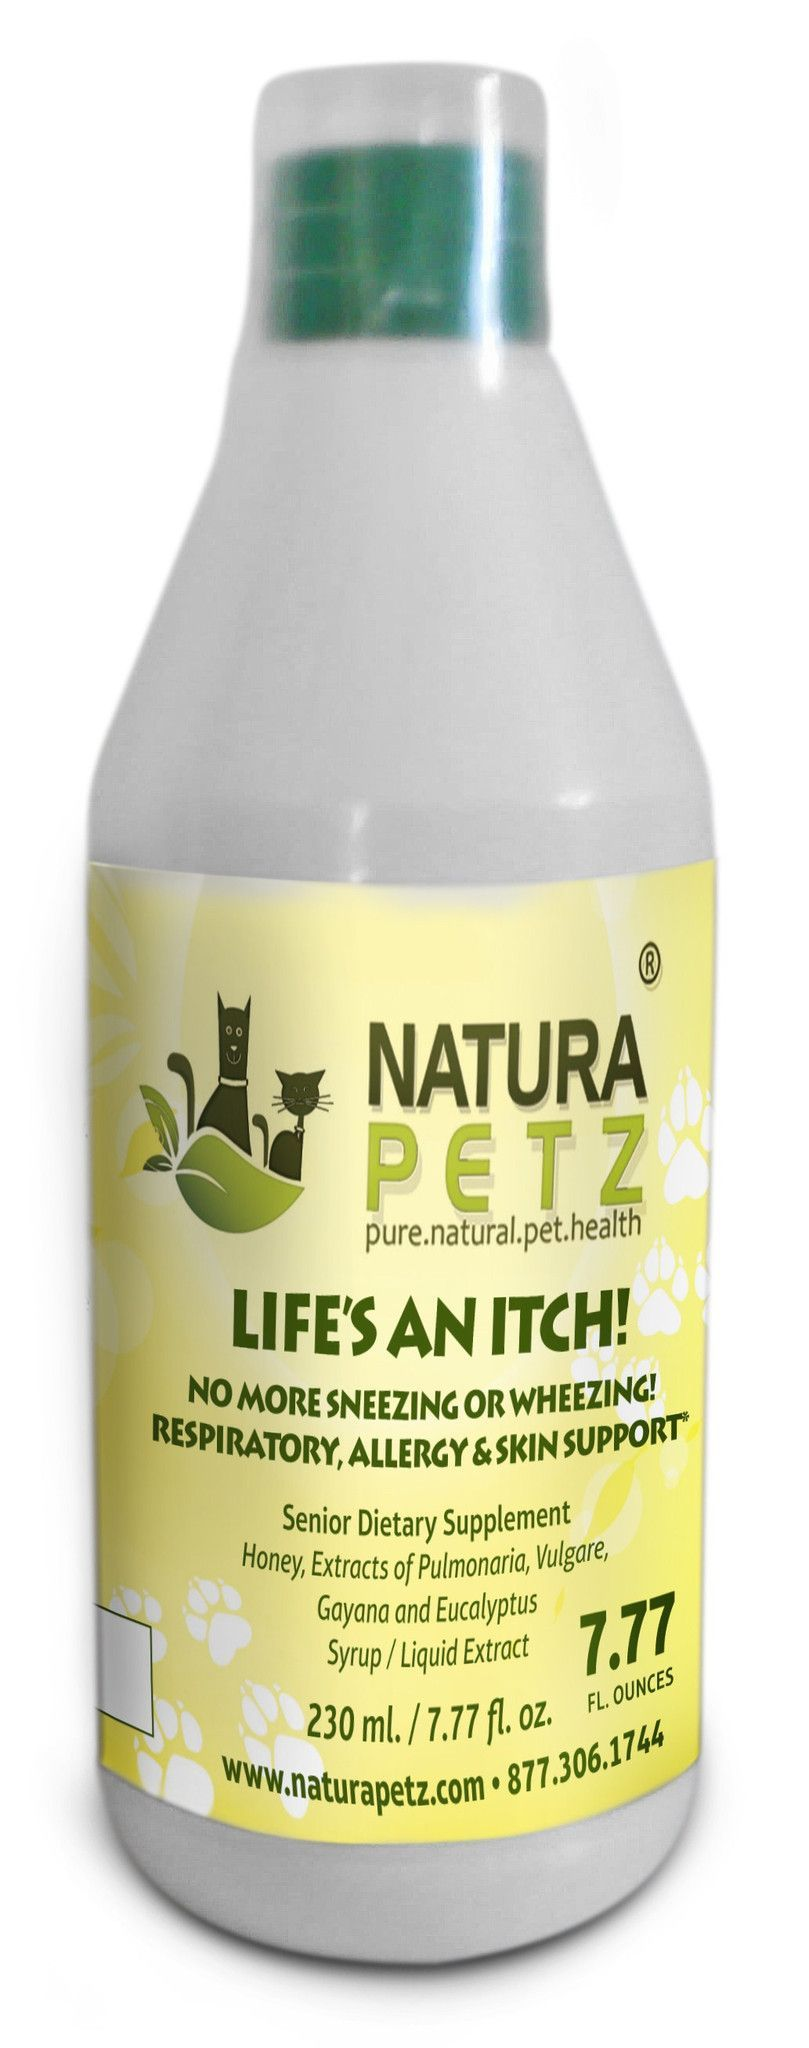 Life's An Itch No More Sneezing or Wheezing